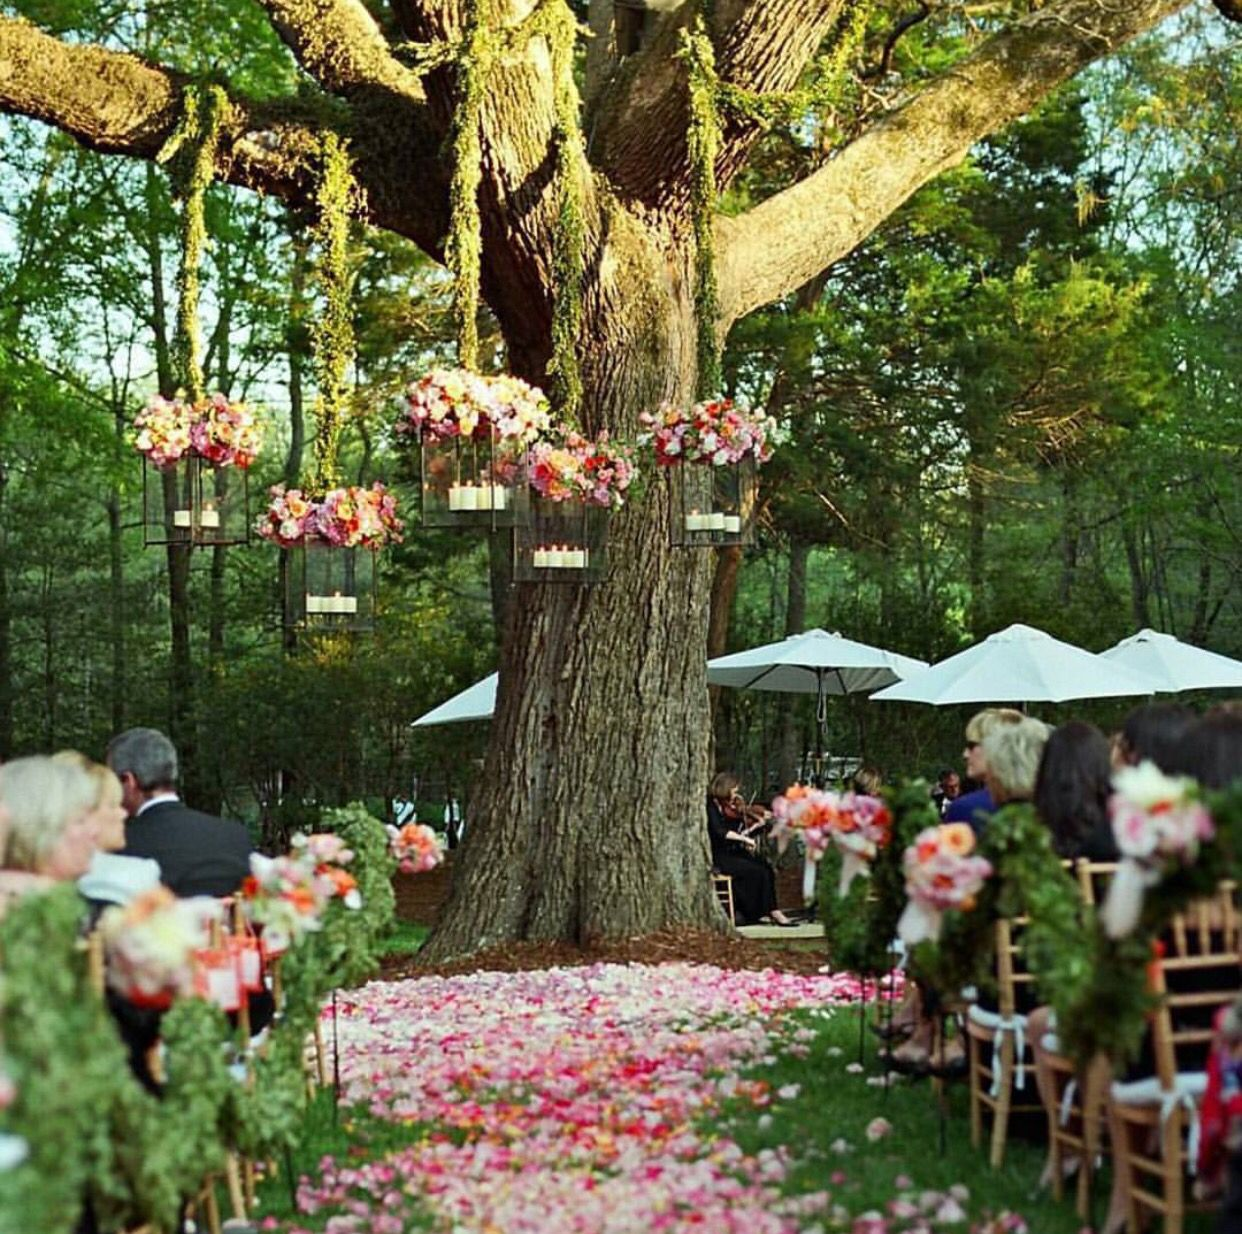 A forest wedding by @weddedwonderland| Be inspirational ❥|Mz. Manerz: Being well dressed is a beautiful form of confidence, happiness & politeness